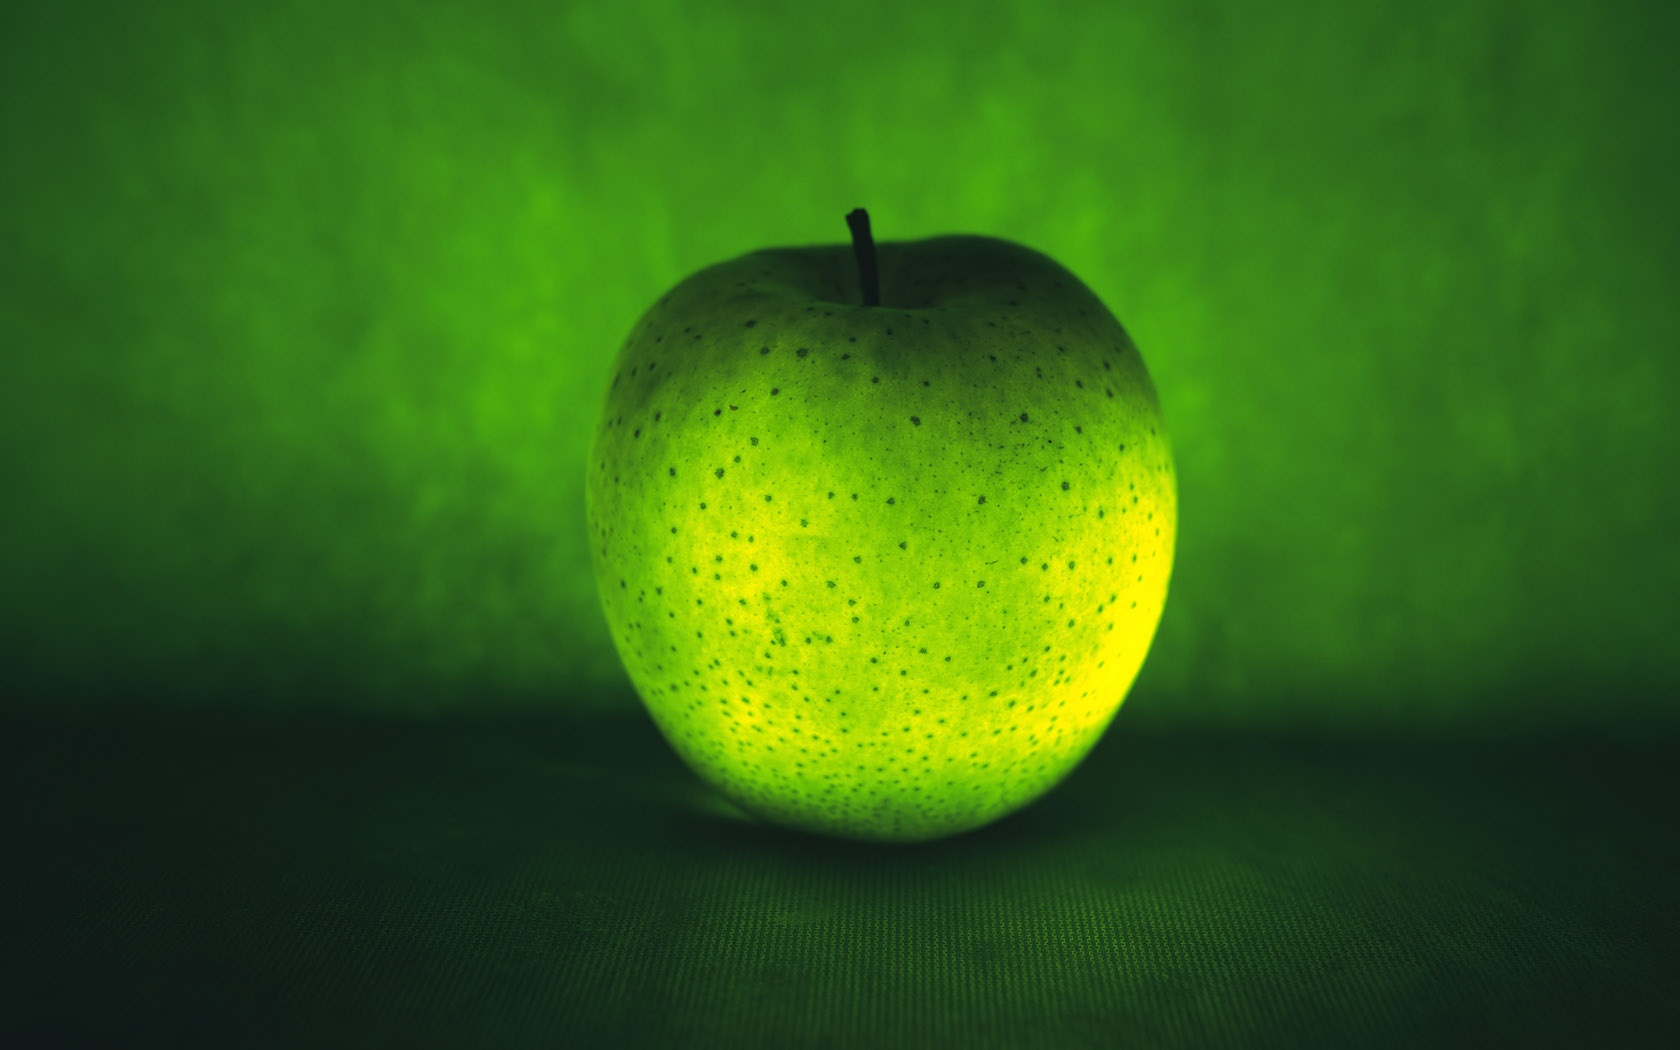 abstract wallpapers hd apple green